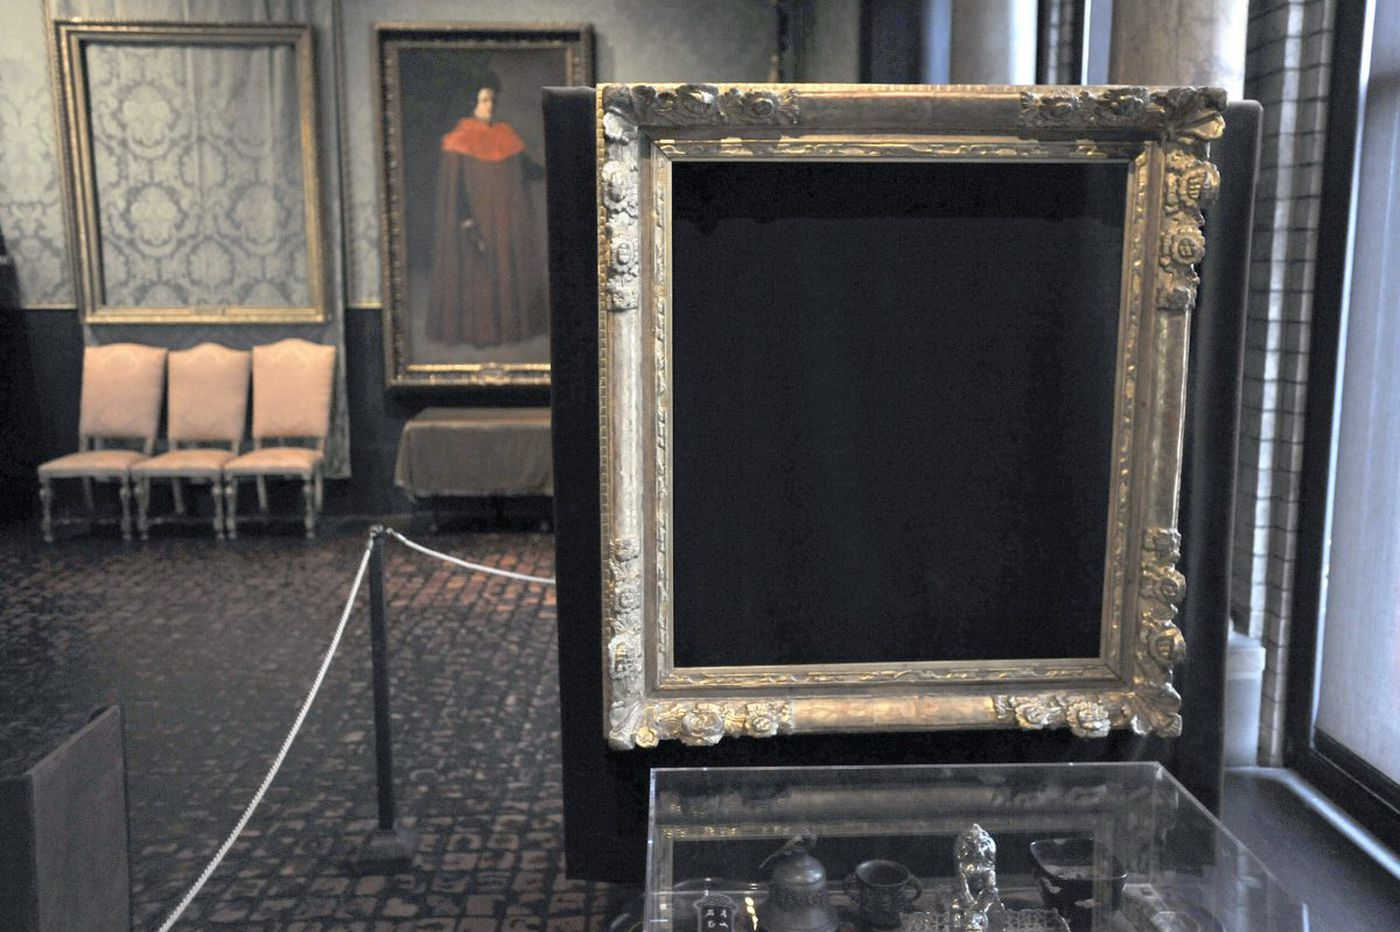 Years after trail went cold in Philly, $10 million reward in biggest U.S. art heist about to expire